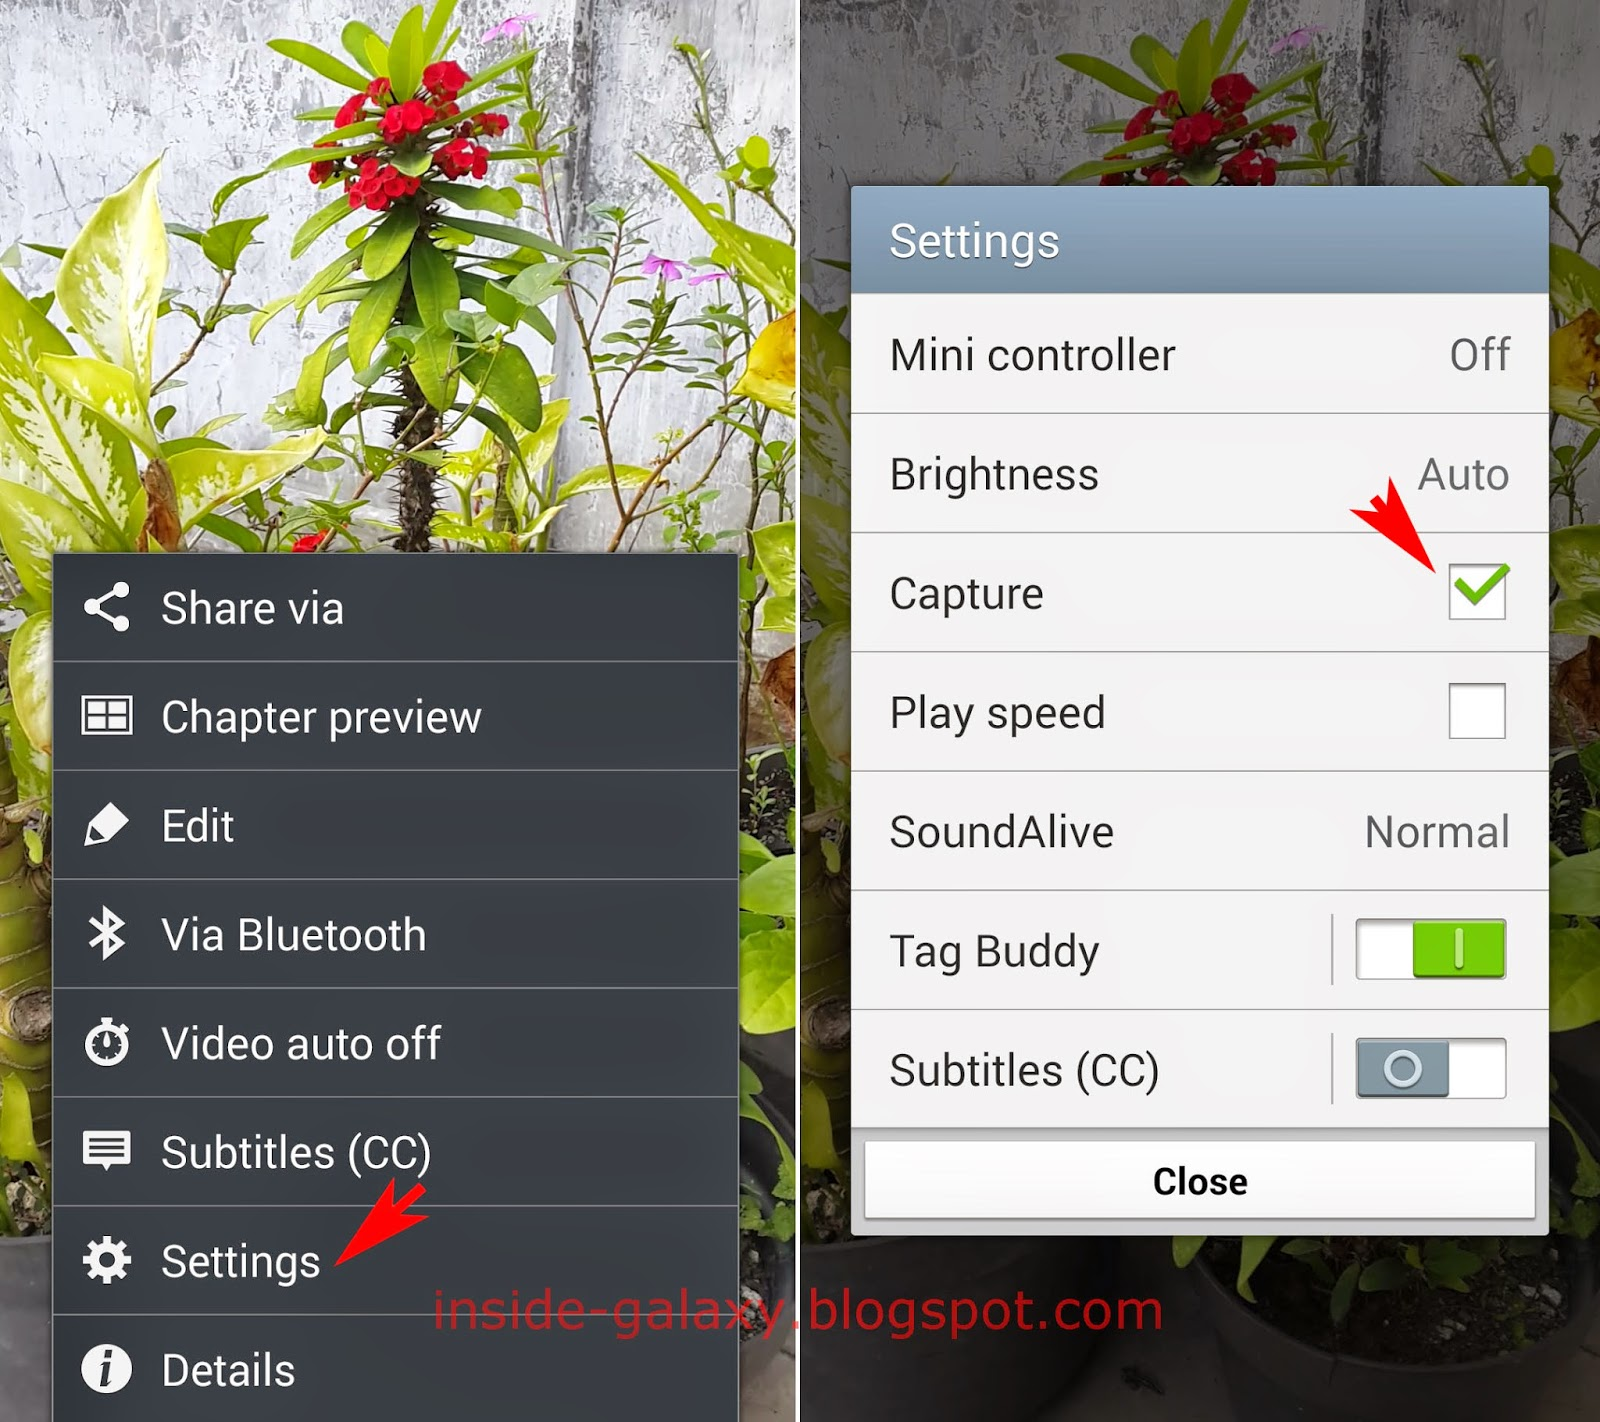 Samsung Galaxy S4: How to Fix Can't Find Capture Icon in the Video